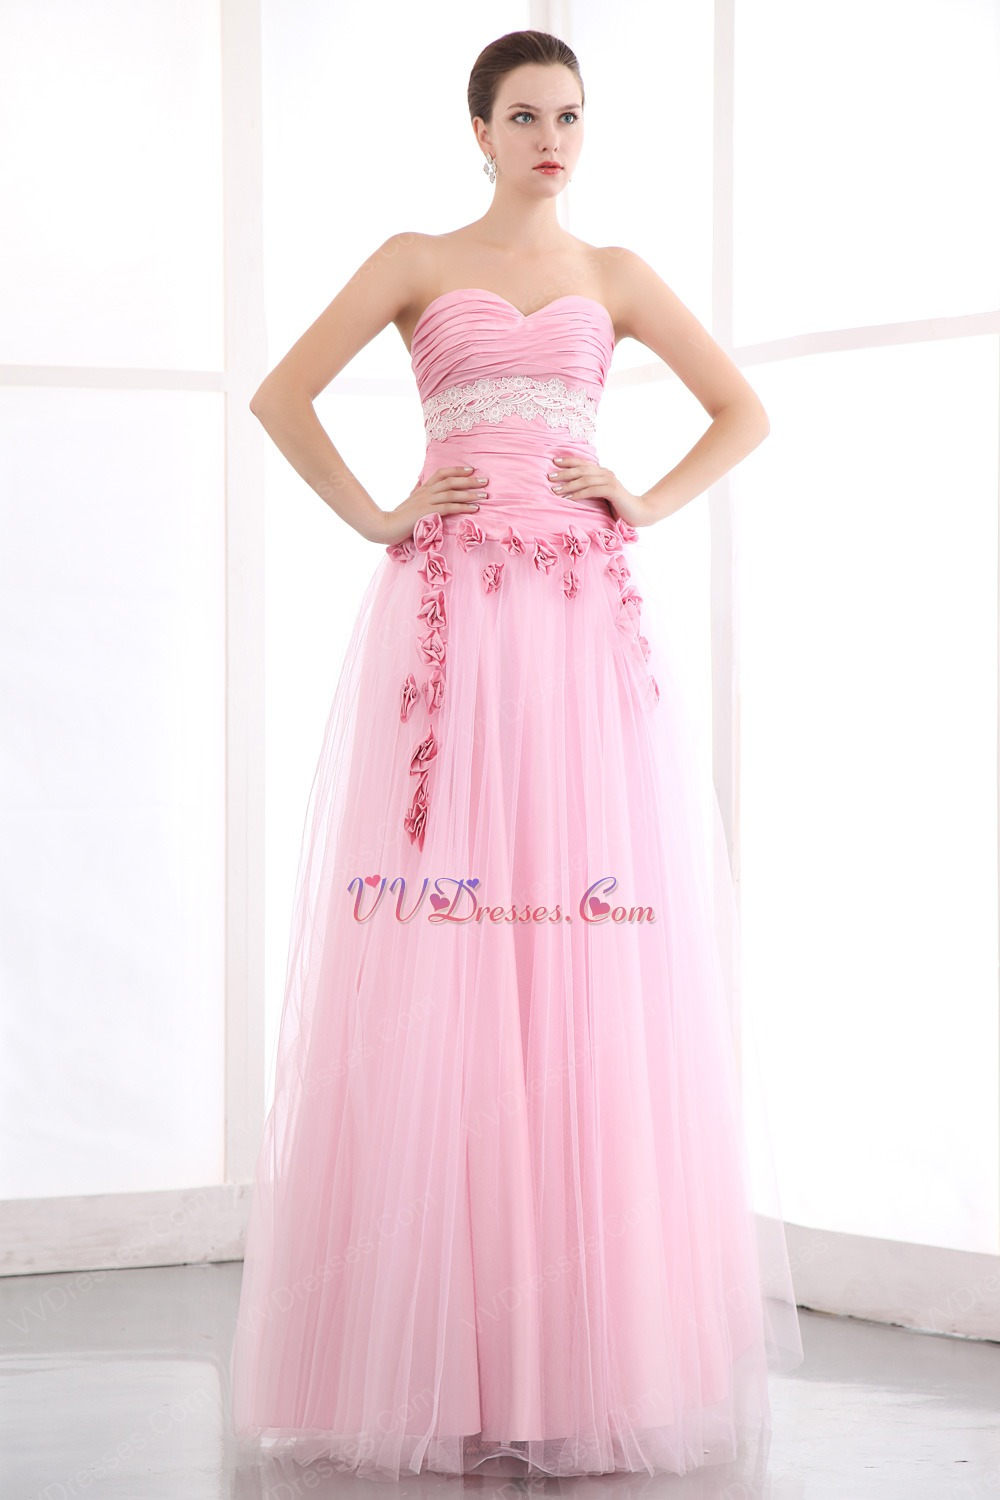 Sweetheart Pink Net Skirt Prom Dress With Flowers Decorate